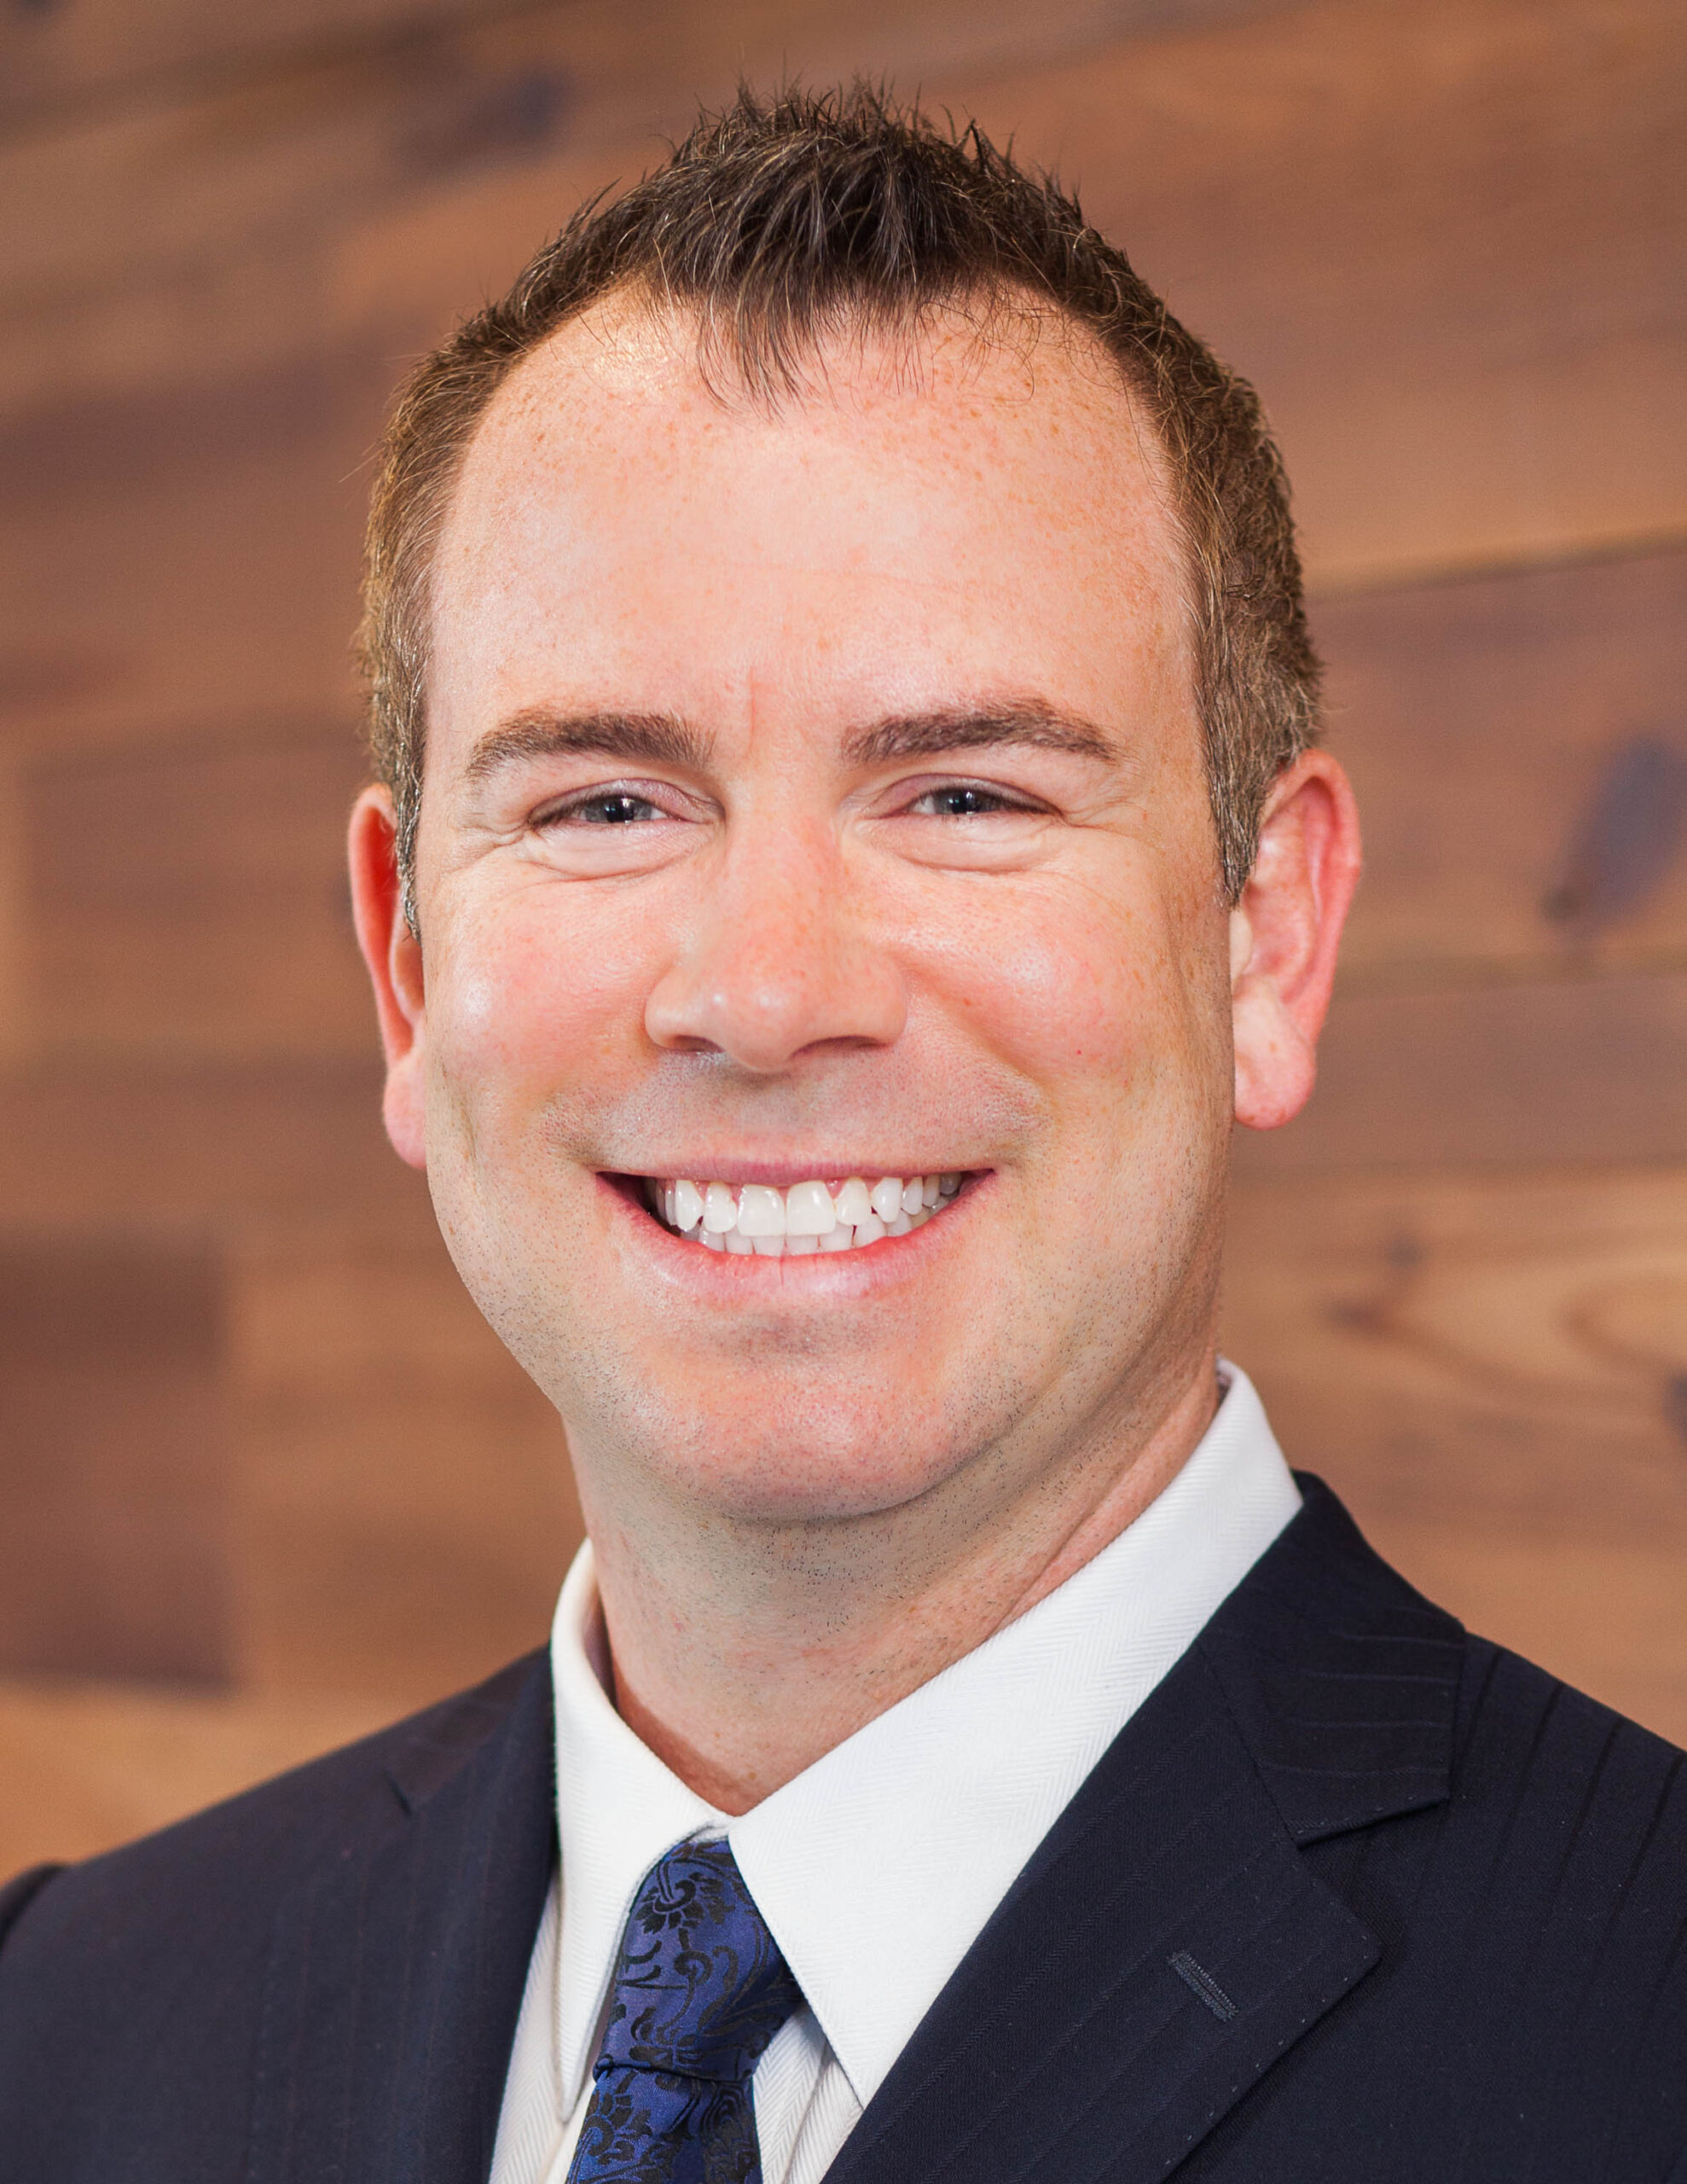 Ben Swann - Senior Vice President and Director of Sales